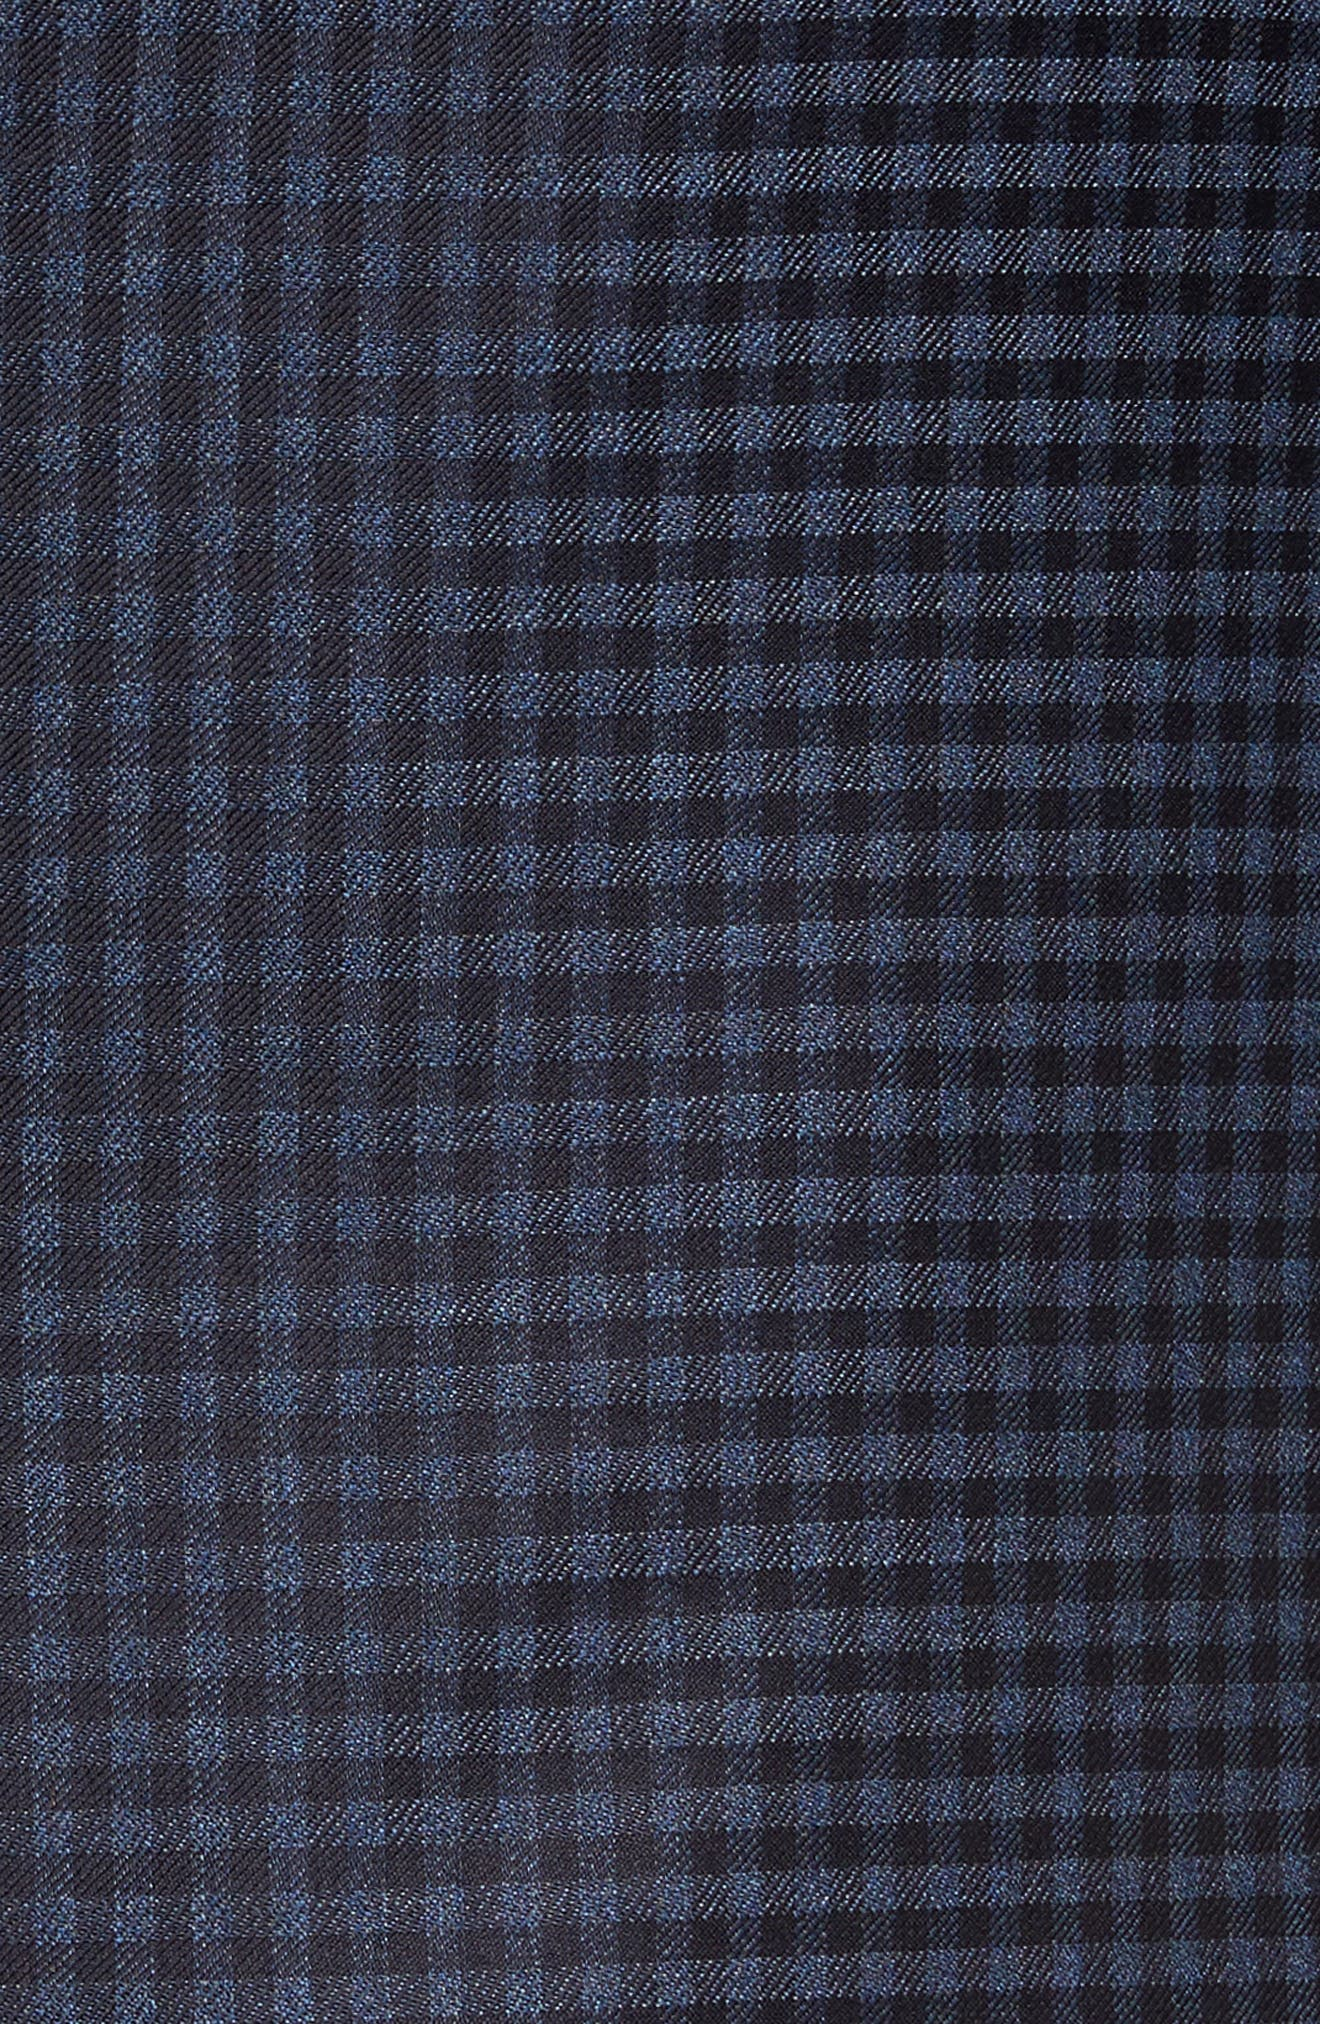 Classic Fit Check Wool Sport Coat,                             Alternate thumbnail 12, color,